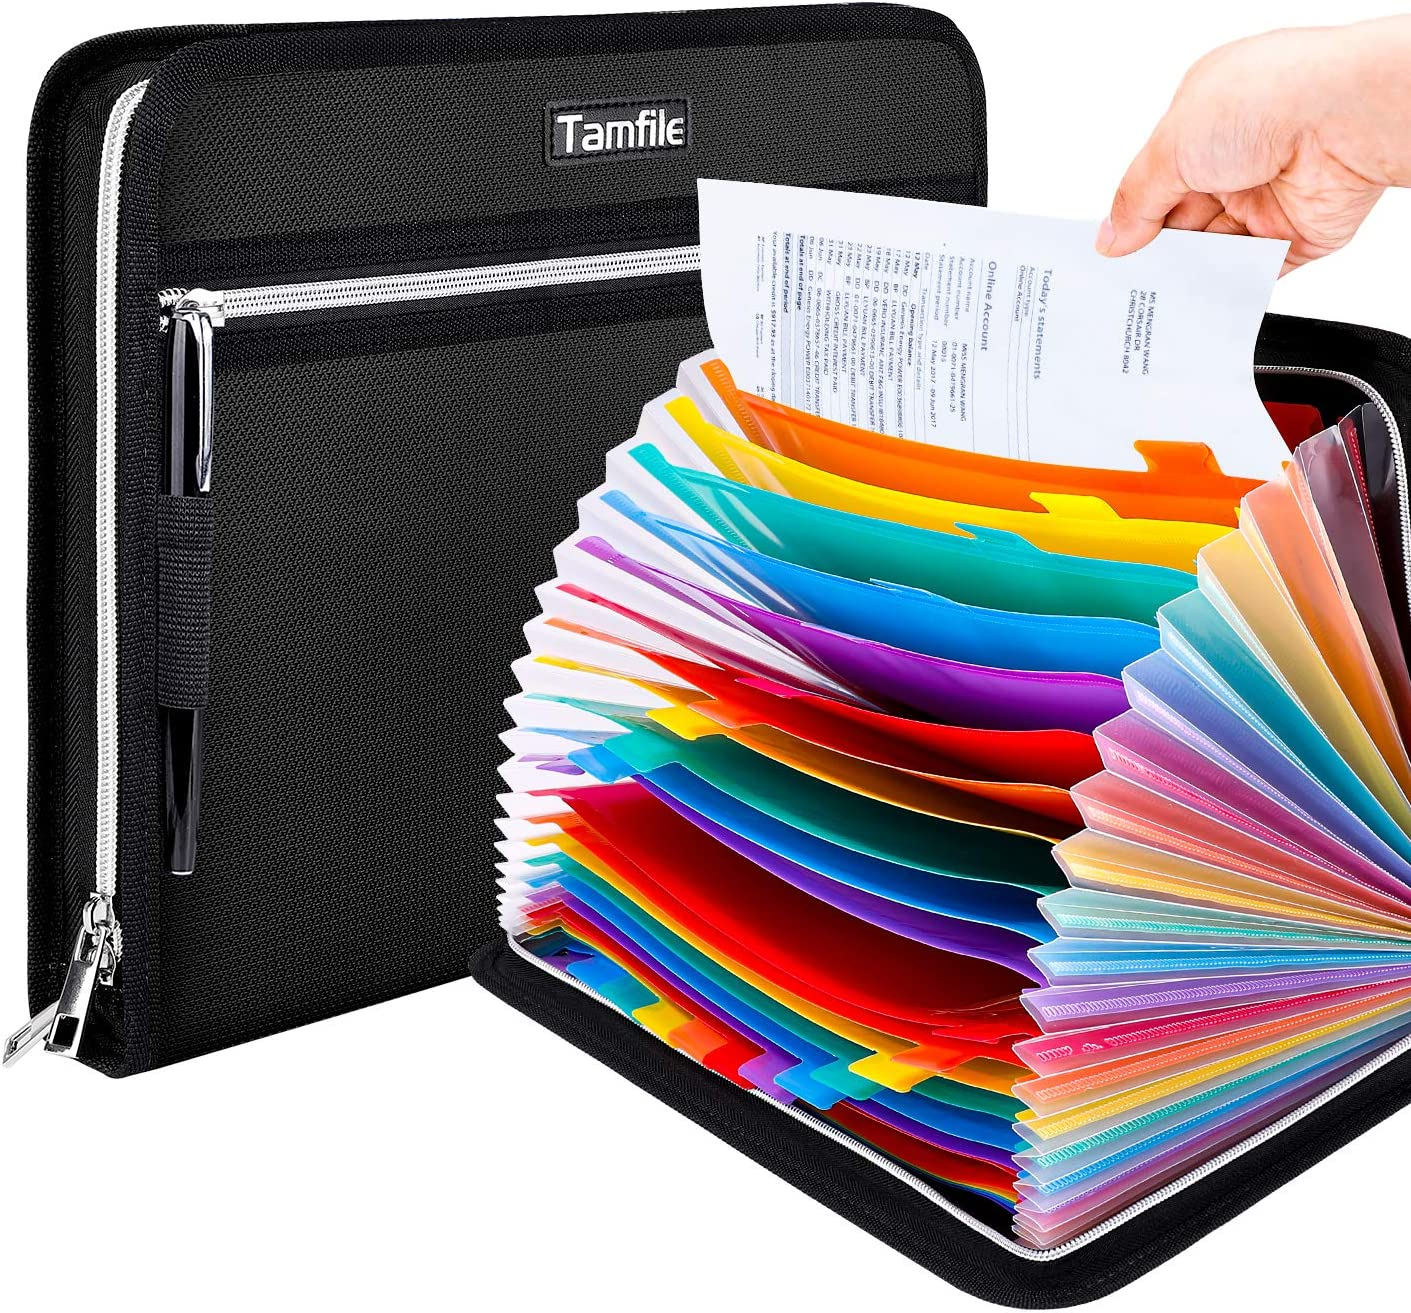 Tamfile Fireproof Waterproof Safe Expanding File Folder Accordion Document Organizer with 24 Pockets Portable Money File Bag Filing Holder and Color Lables/3Zippers A4 Letter Size (Black,14.3